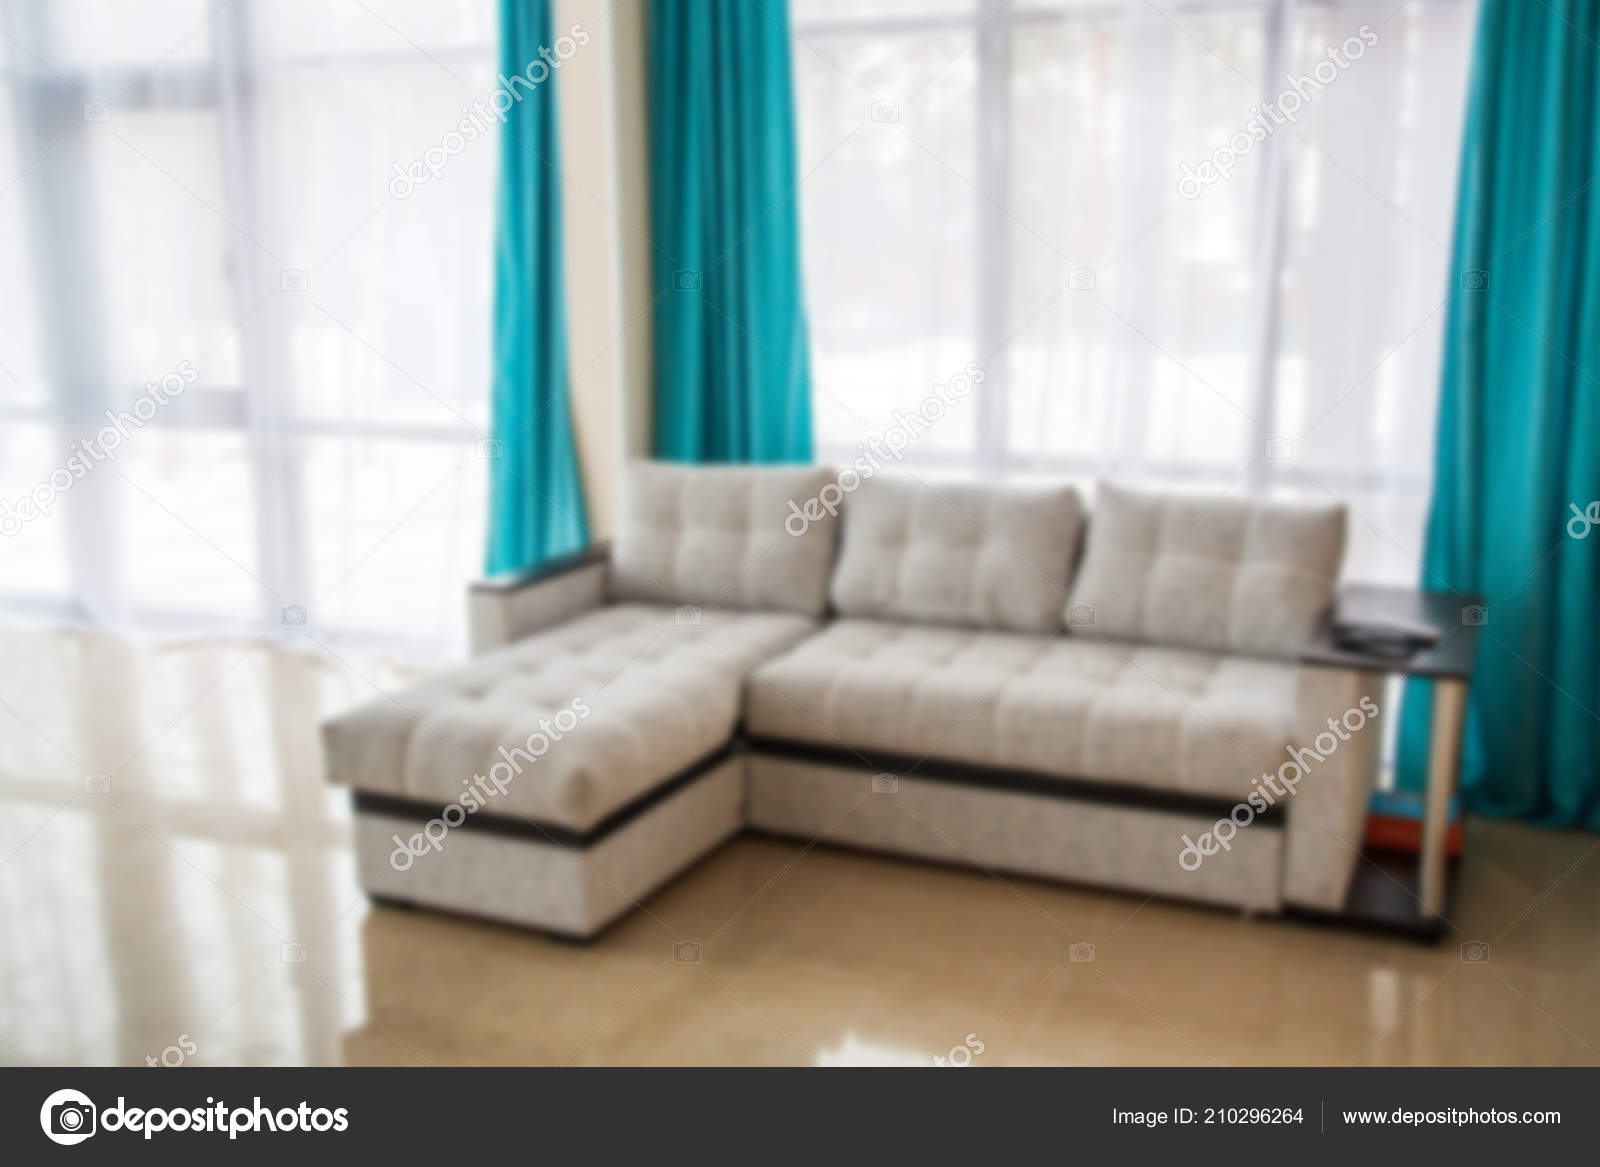 Blurred Living Room Gray Sofa Light Interior Blue Curtains